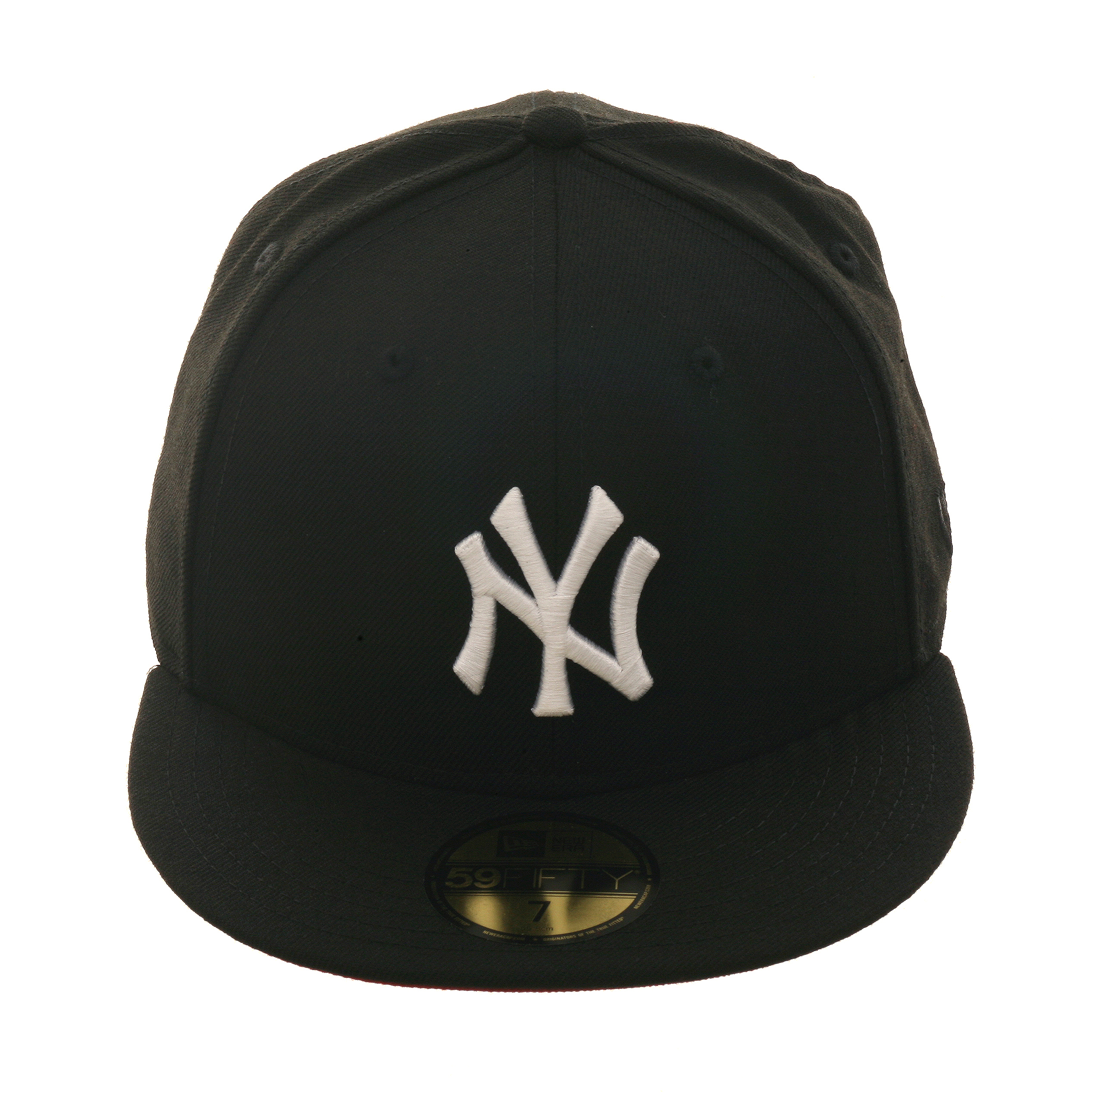 fdcf2537737 Exclusive New Era 59Fifty New York Yankees Hat w  Red Undervisor - Black